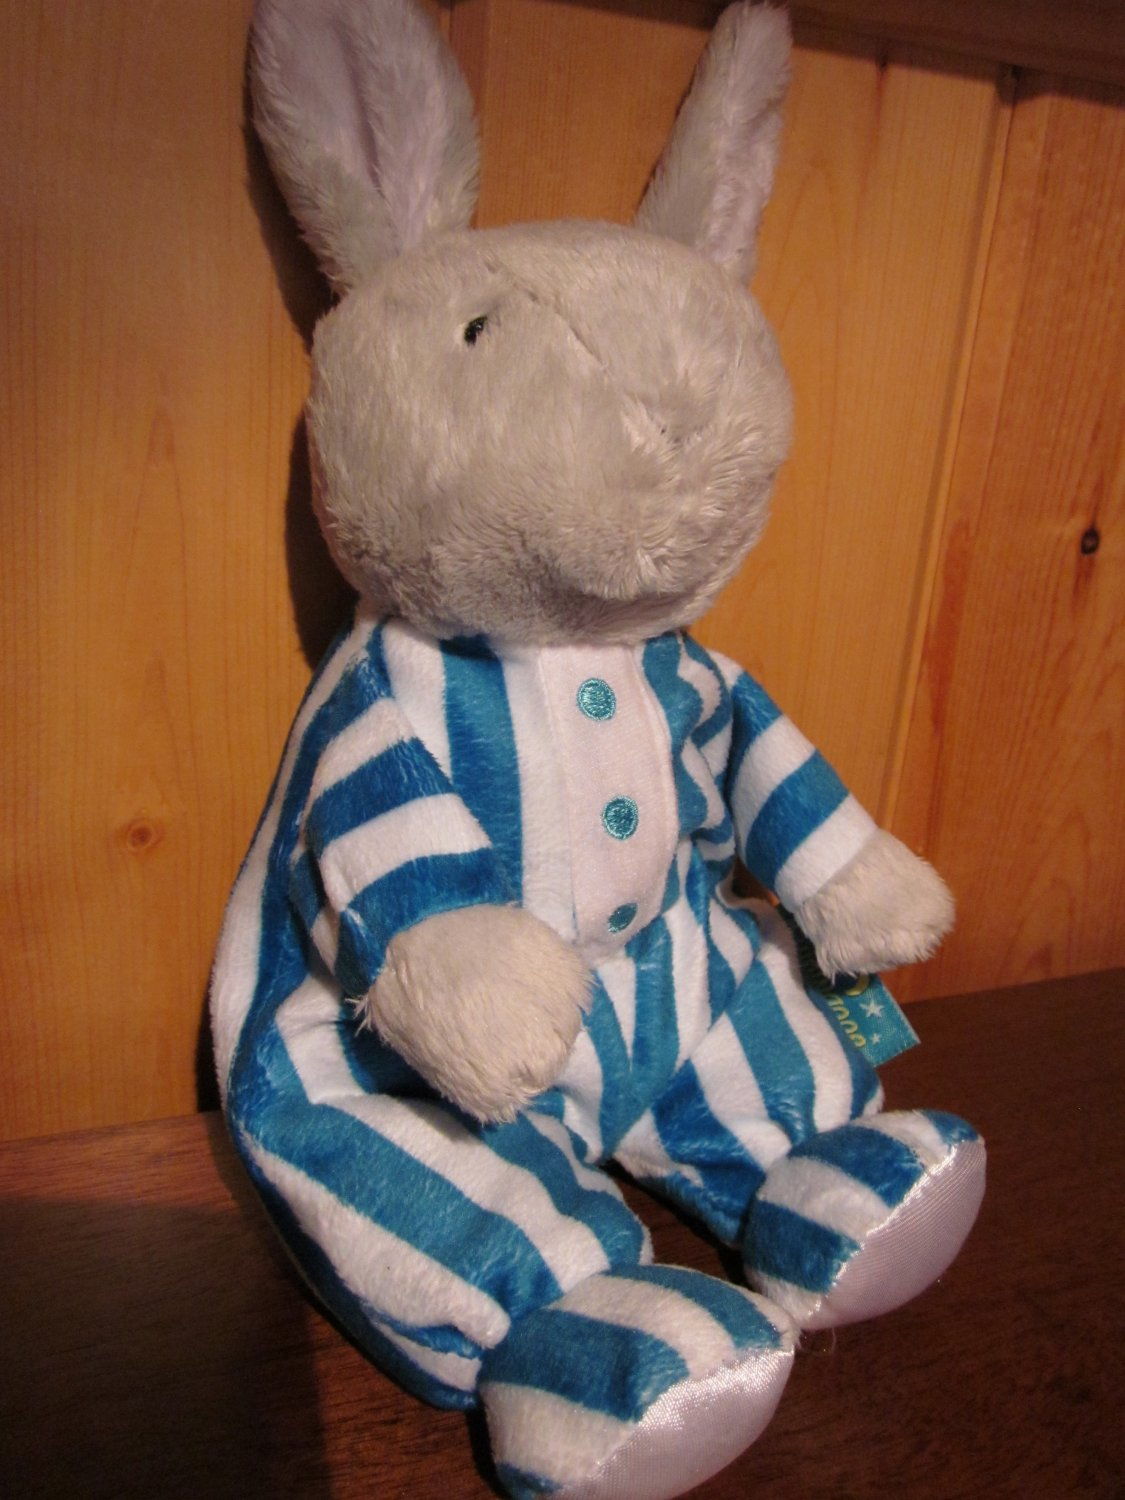 From the Book Good Night Moon Plush Bunny Rabbit in striped Pajamas 1991 by Kids Preferred